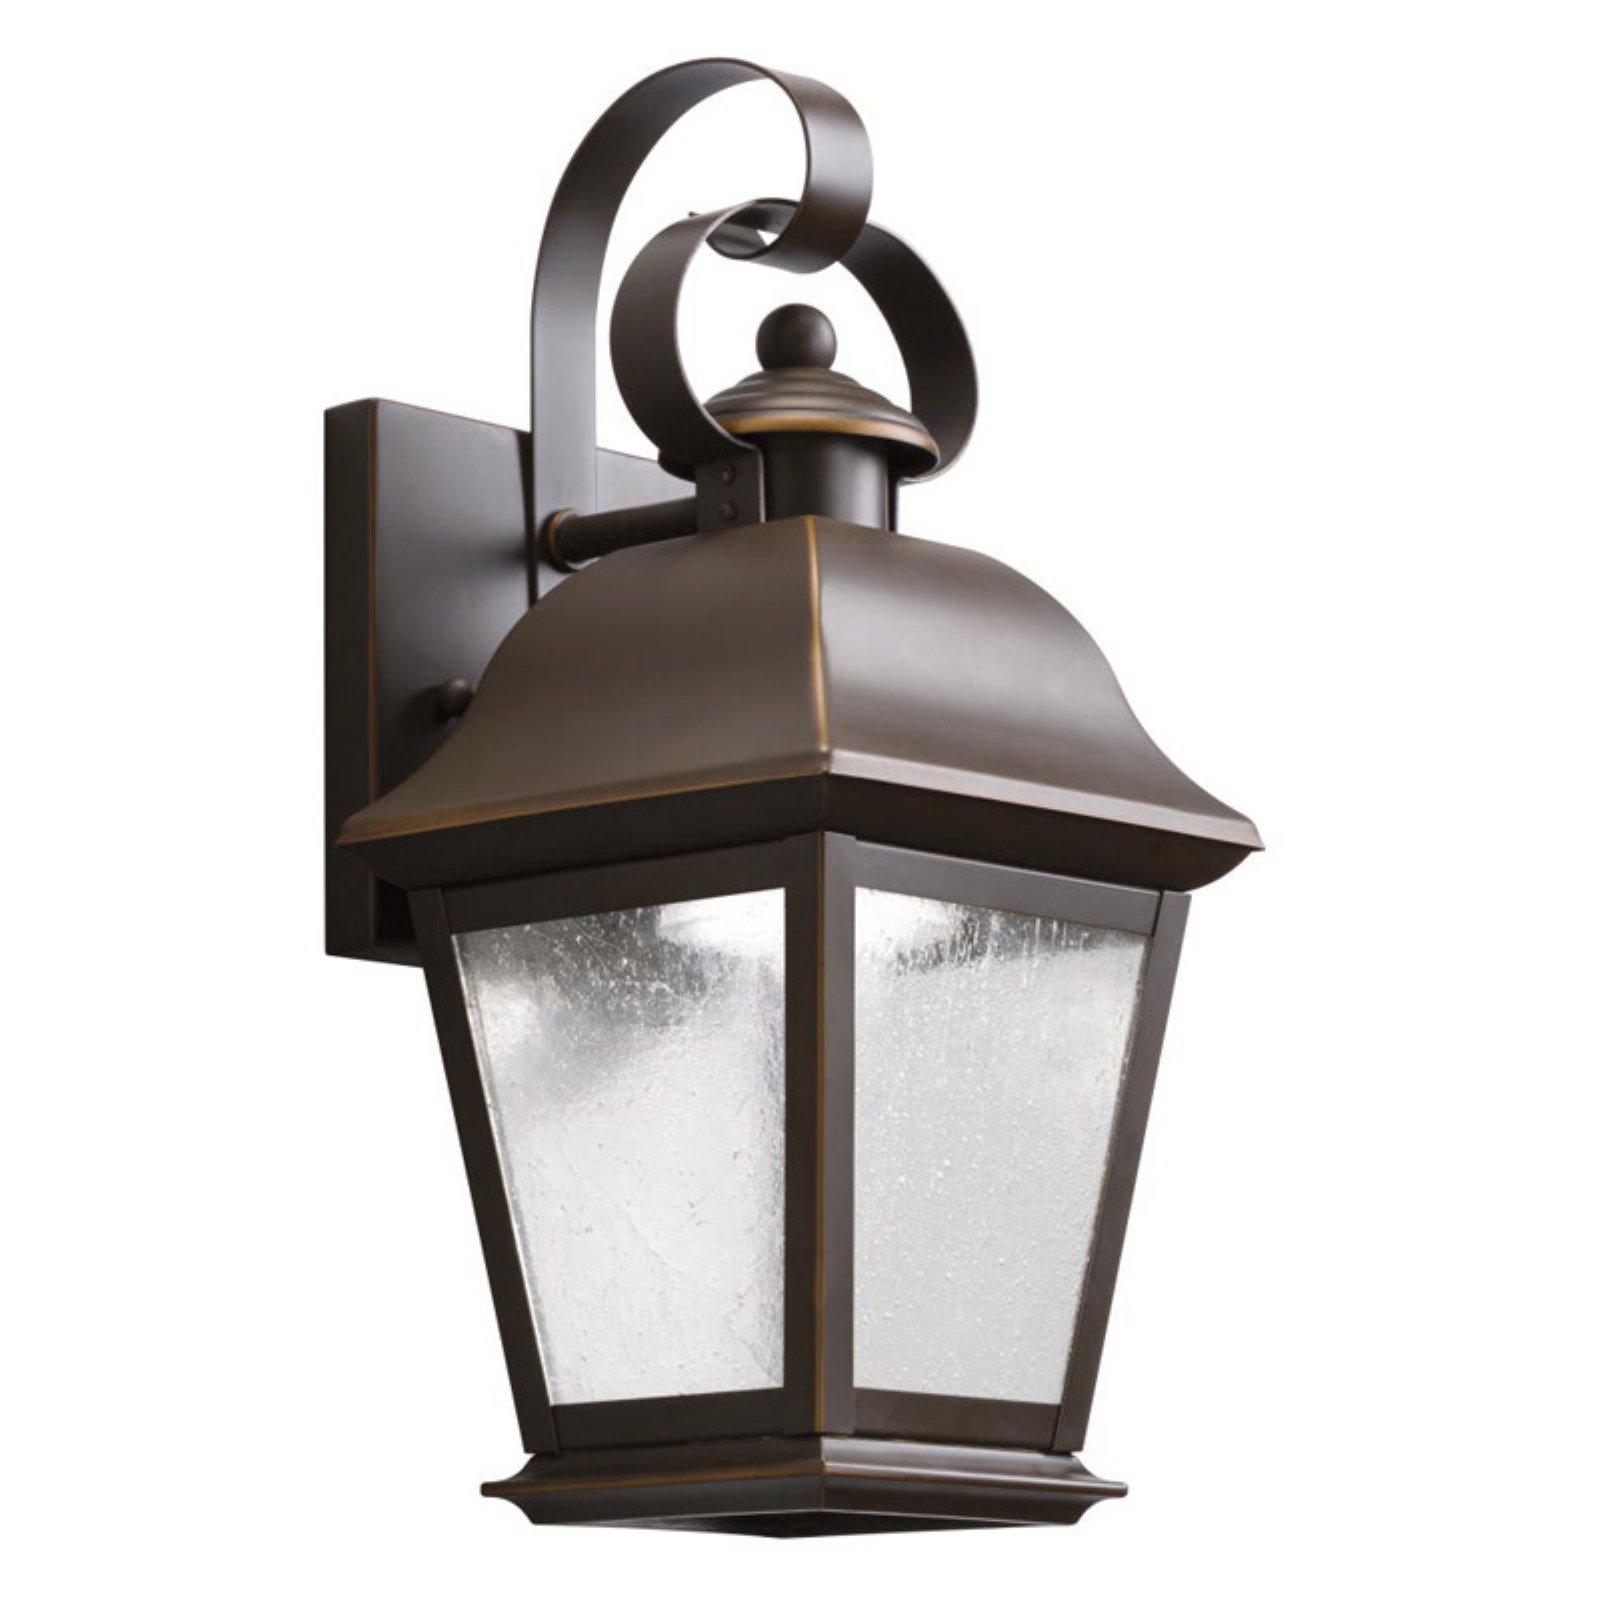 Kichler Mount Vernon 970 Outdoor Wall Lantern